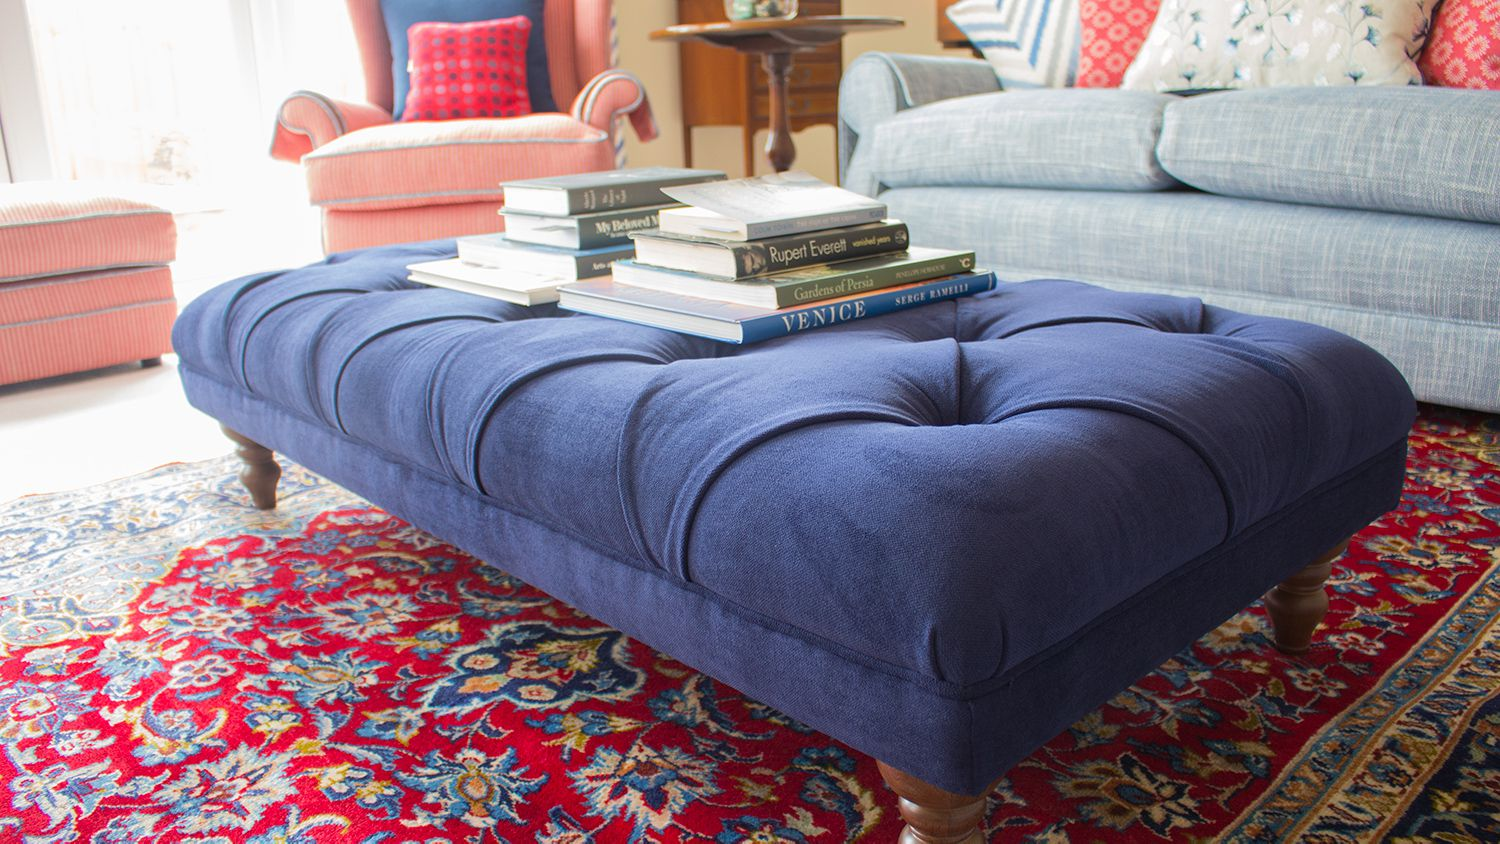 A close up photo of the blue upholstered footstool on the red Persian rug.